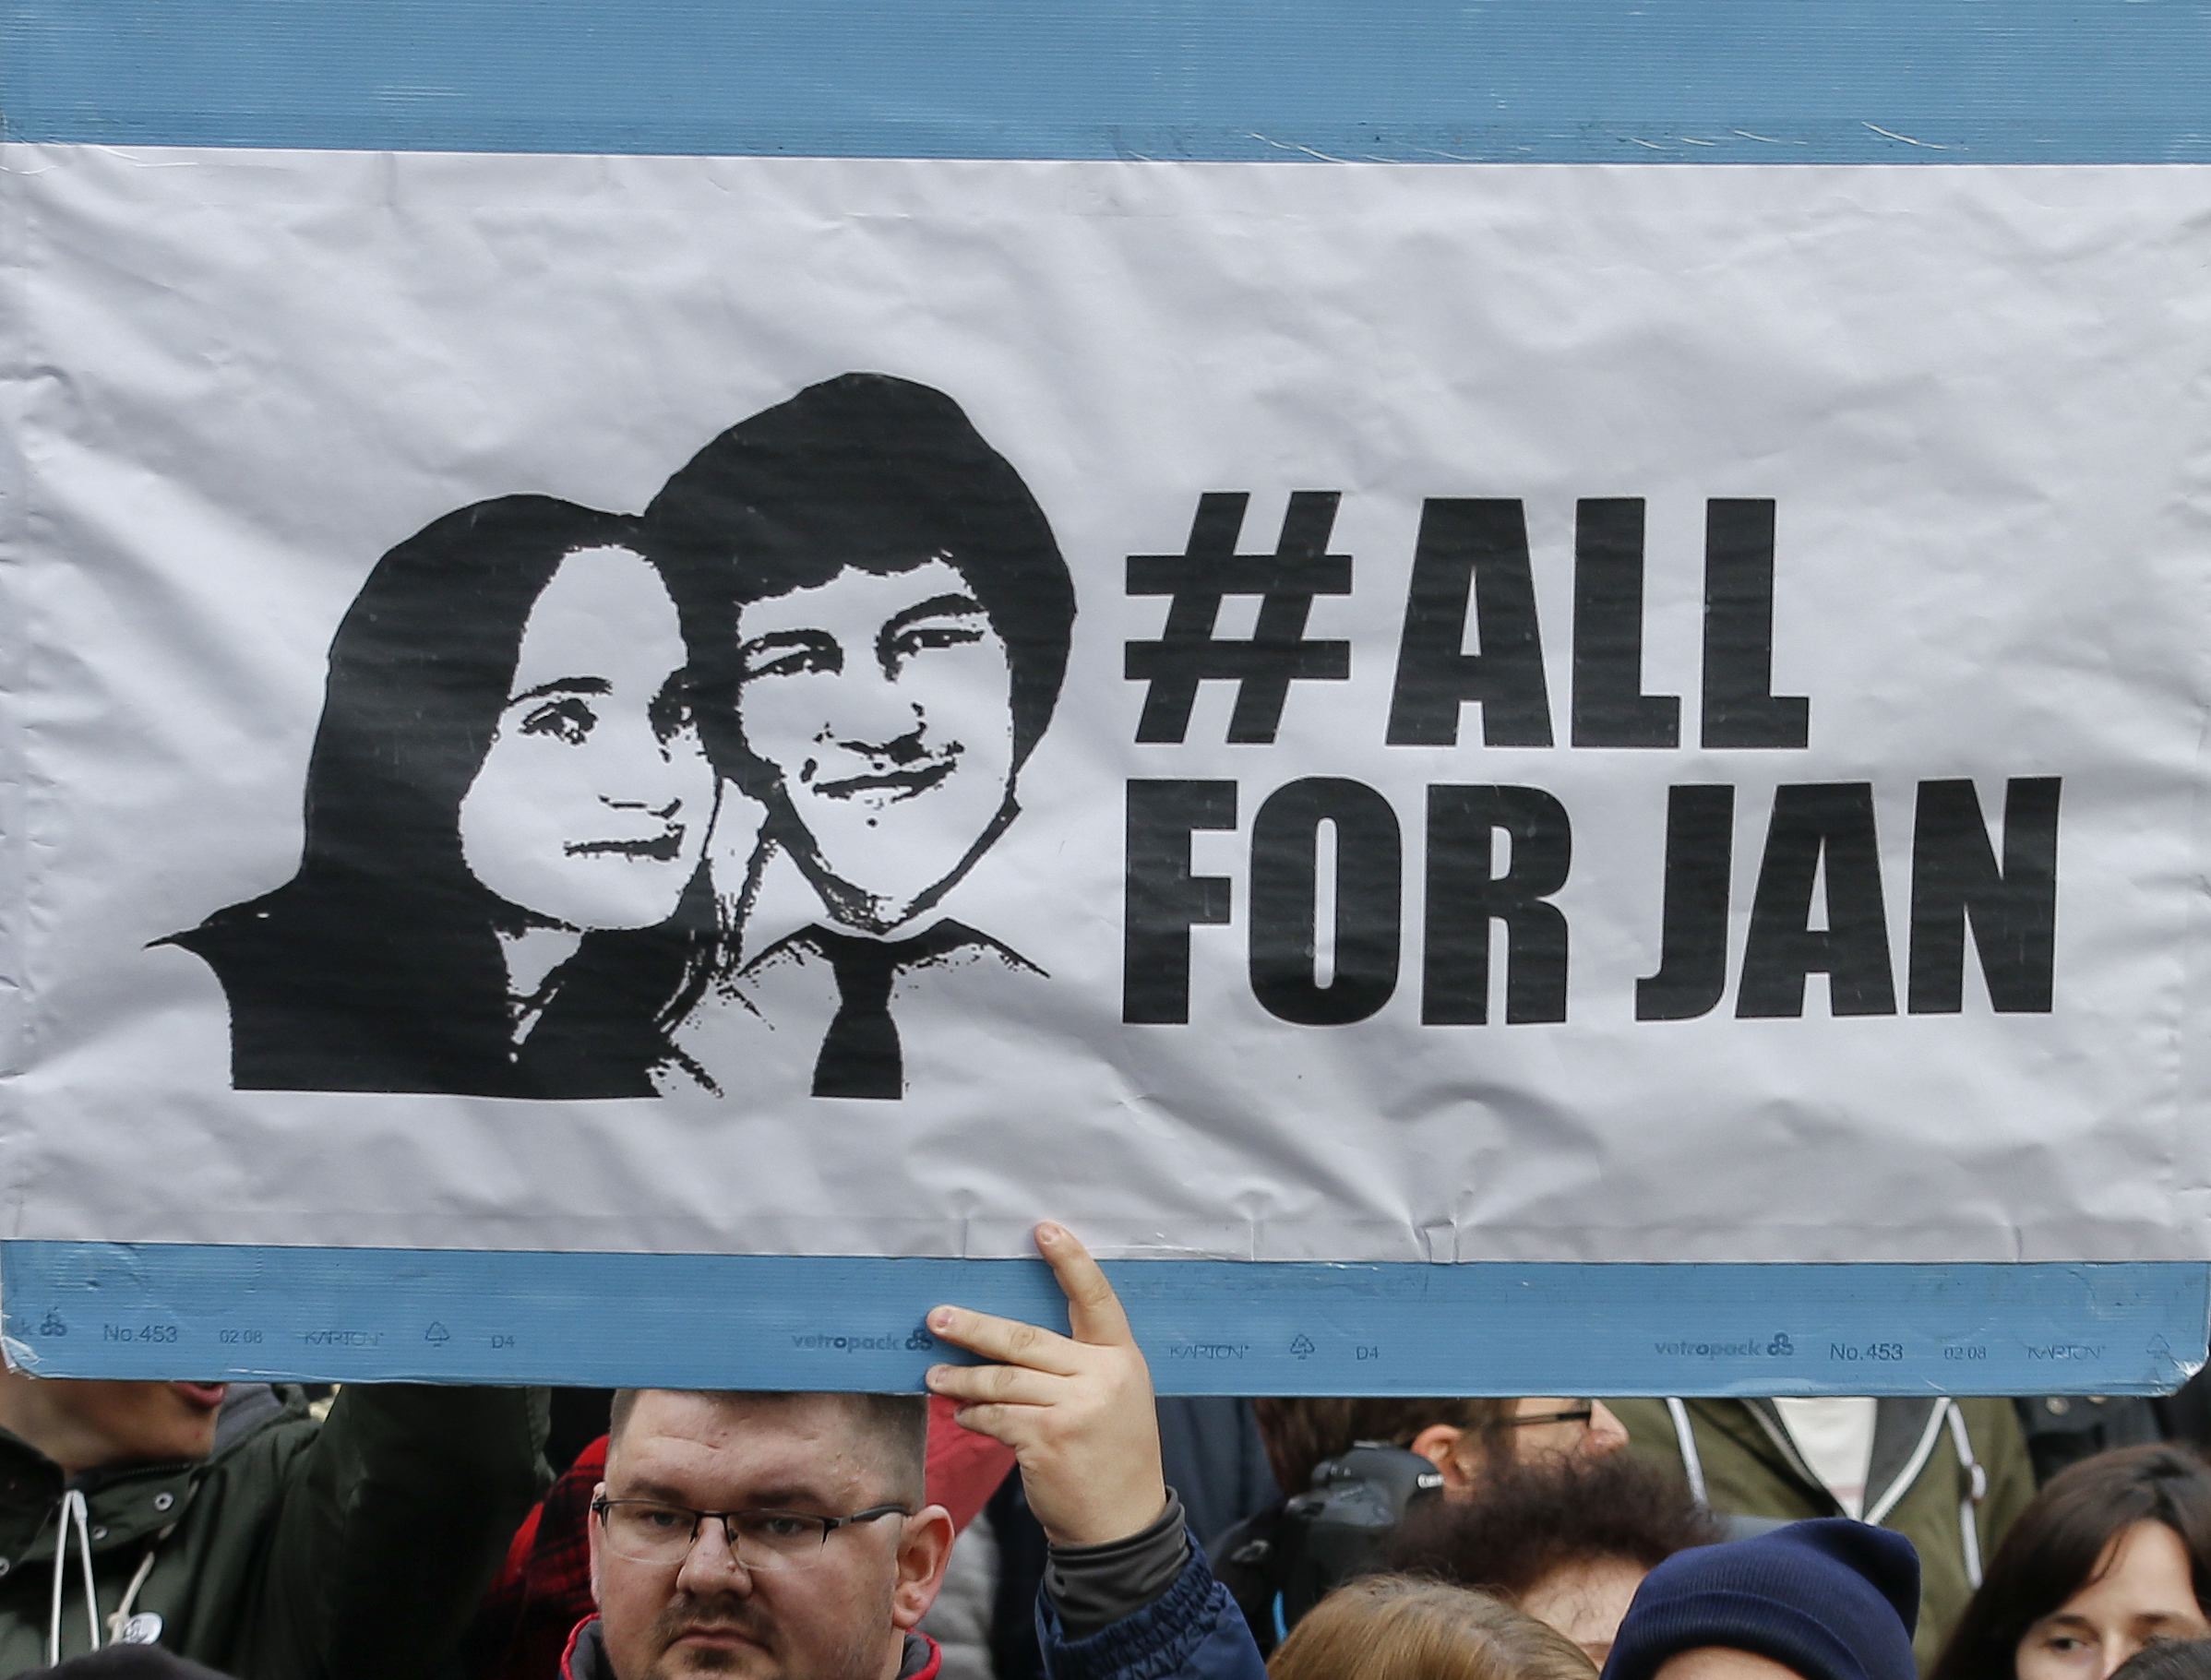 FILE- In this file photo taken on March 16, 2018, people celebrate the resignation of Prime Minister Robert Fico as a way out of the political crisis triggered by the slayings of journalist Jan Kuciak, during a rally in Bratislava, Slovakia.